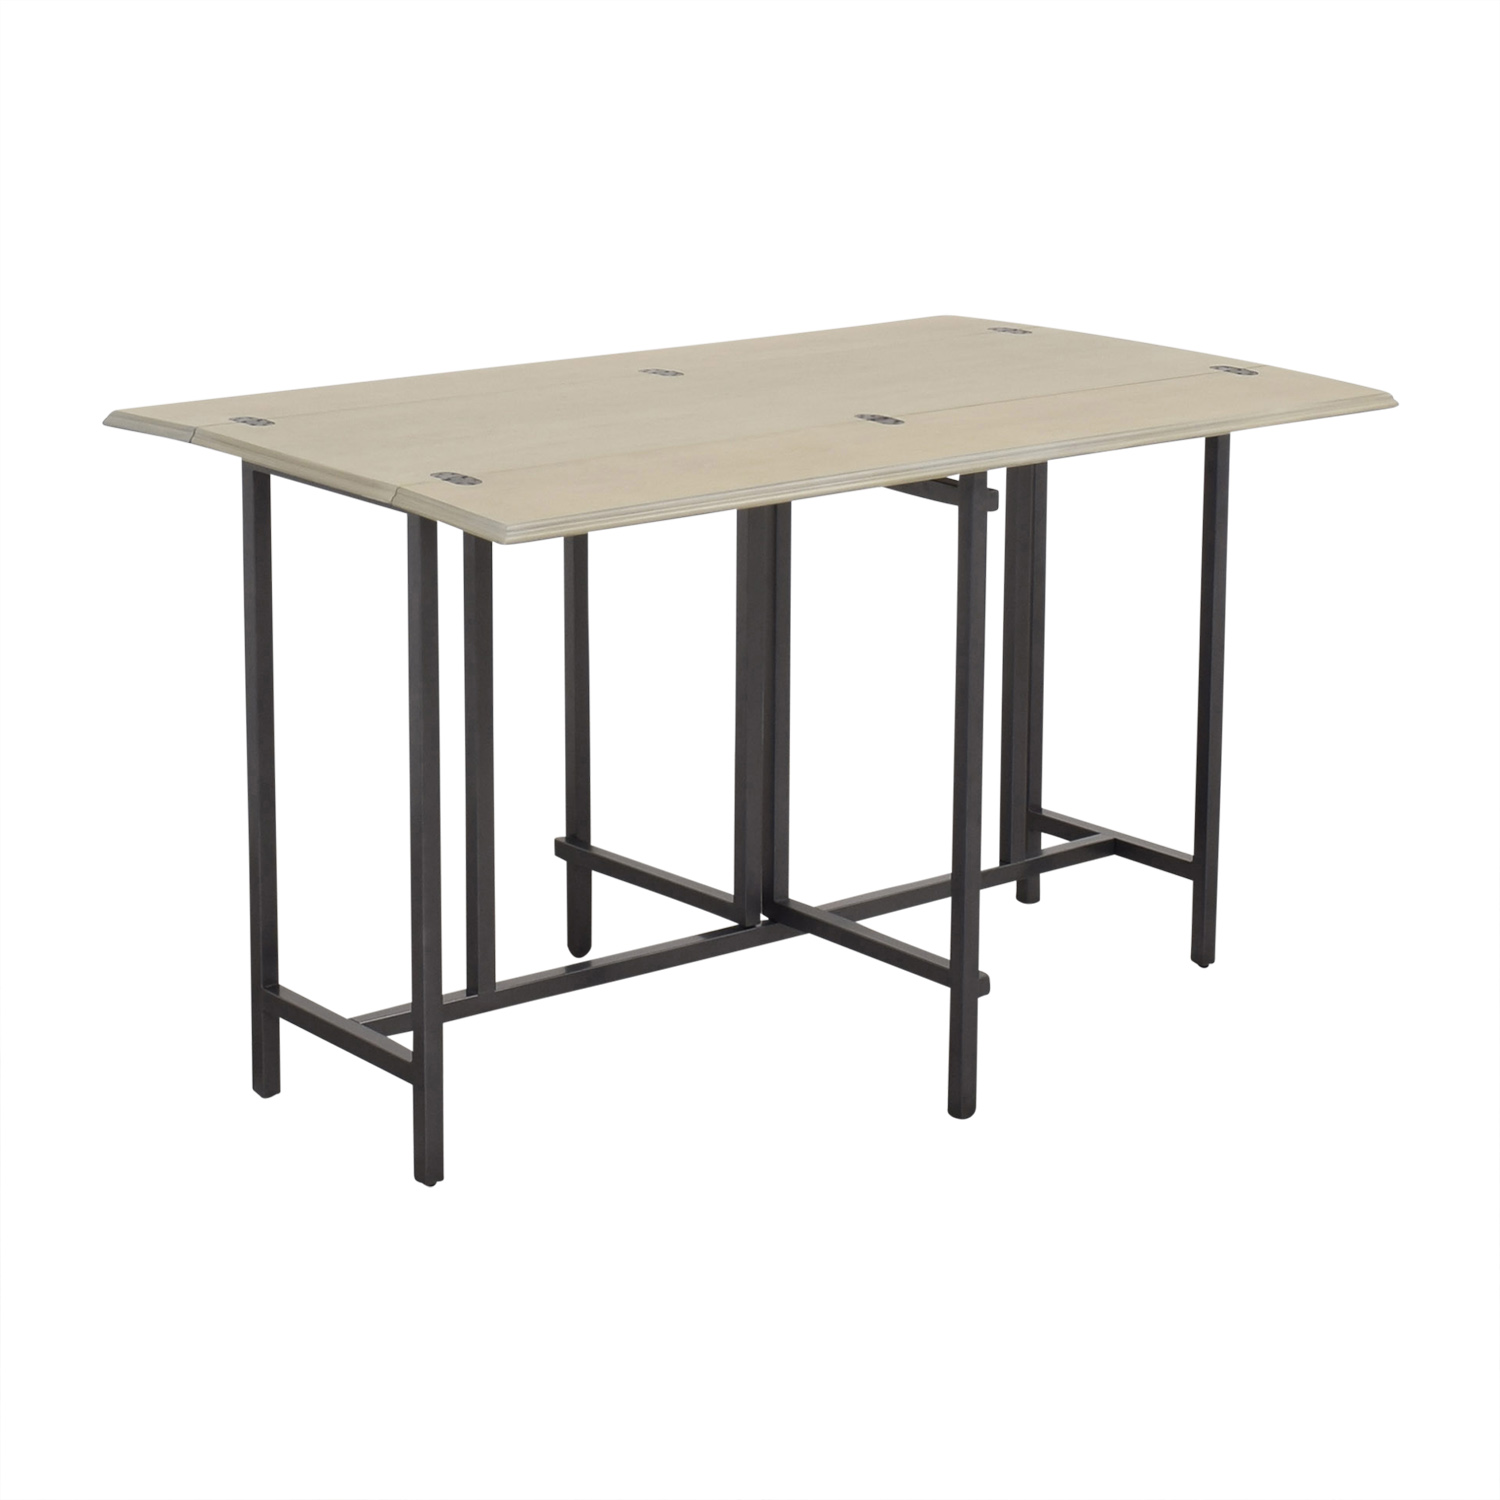 Extension Console Table for sale